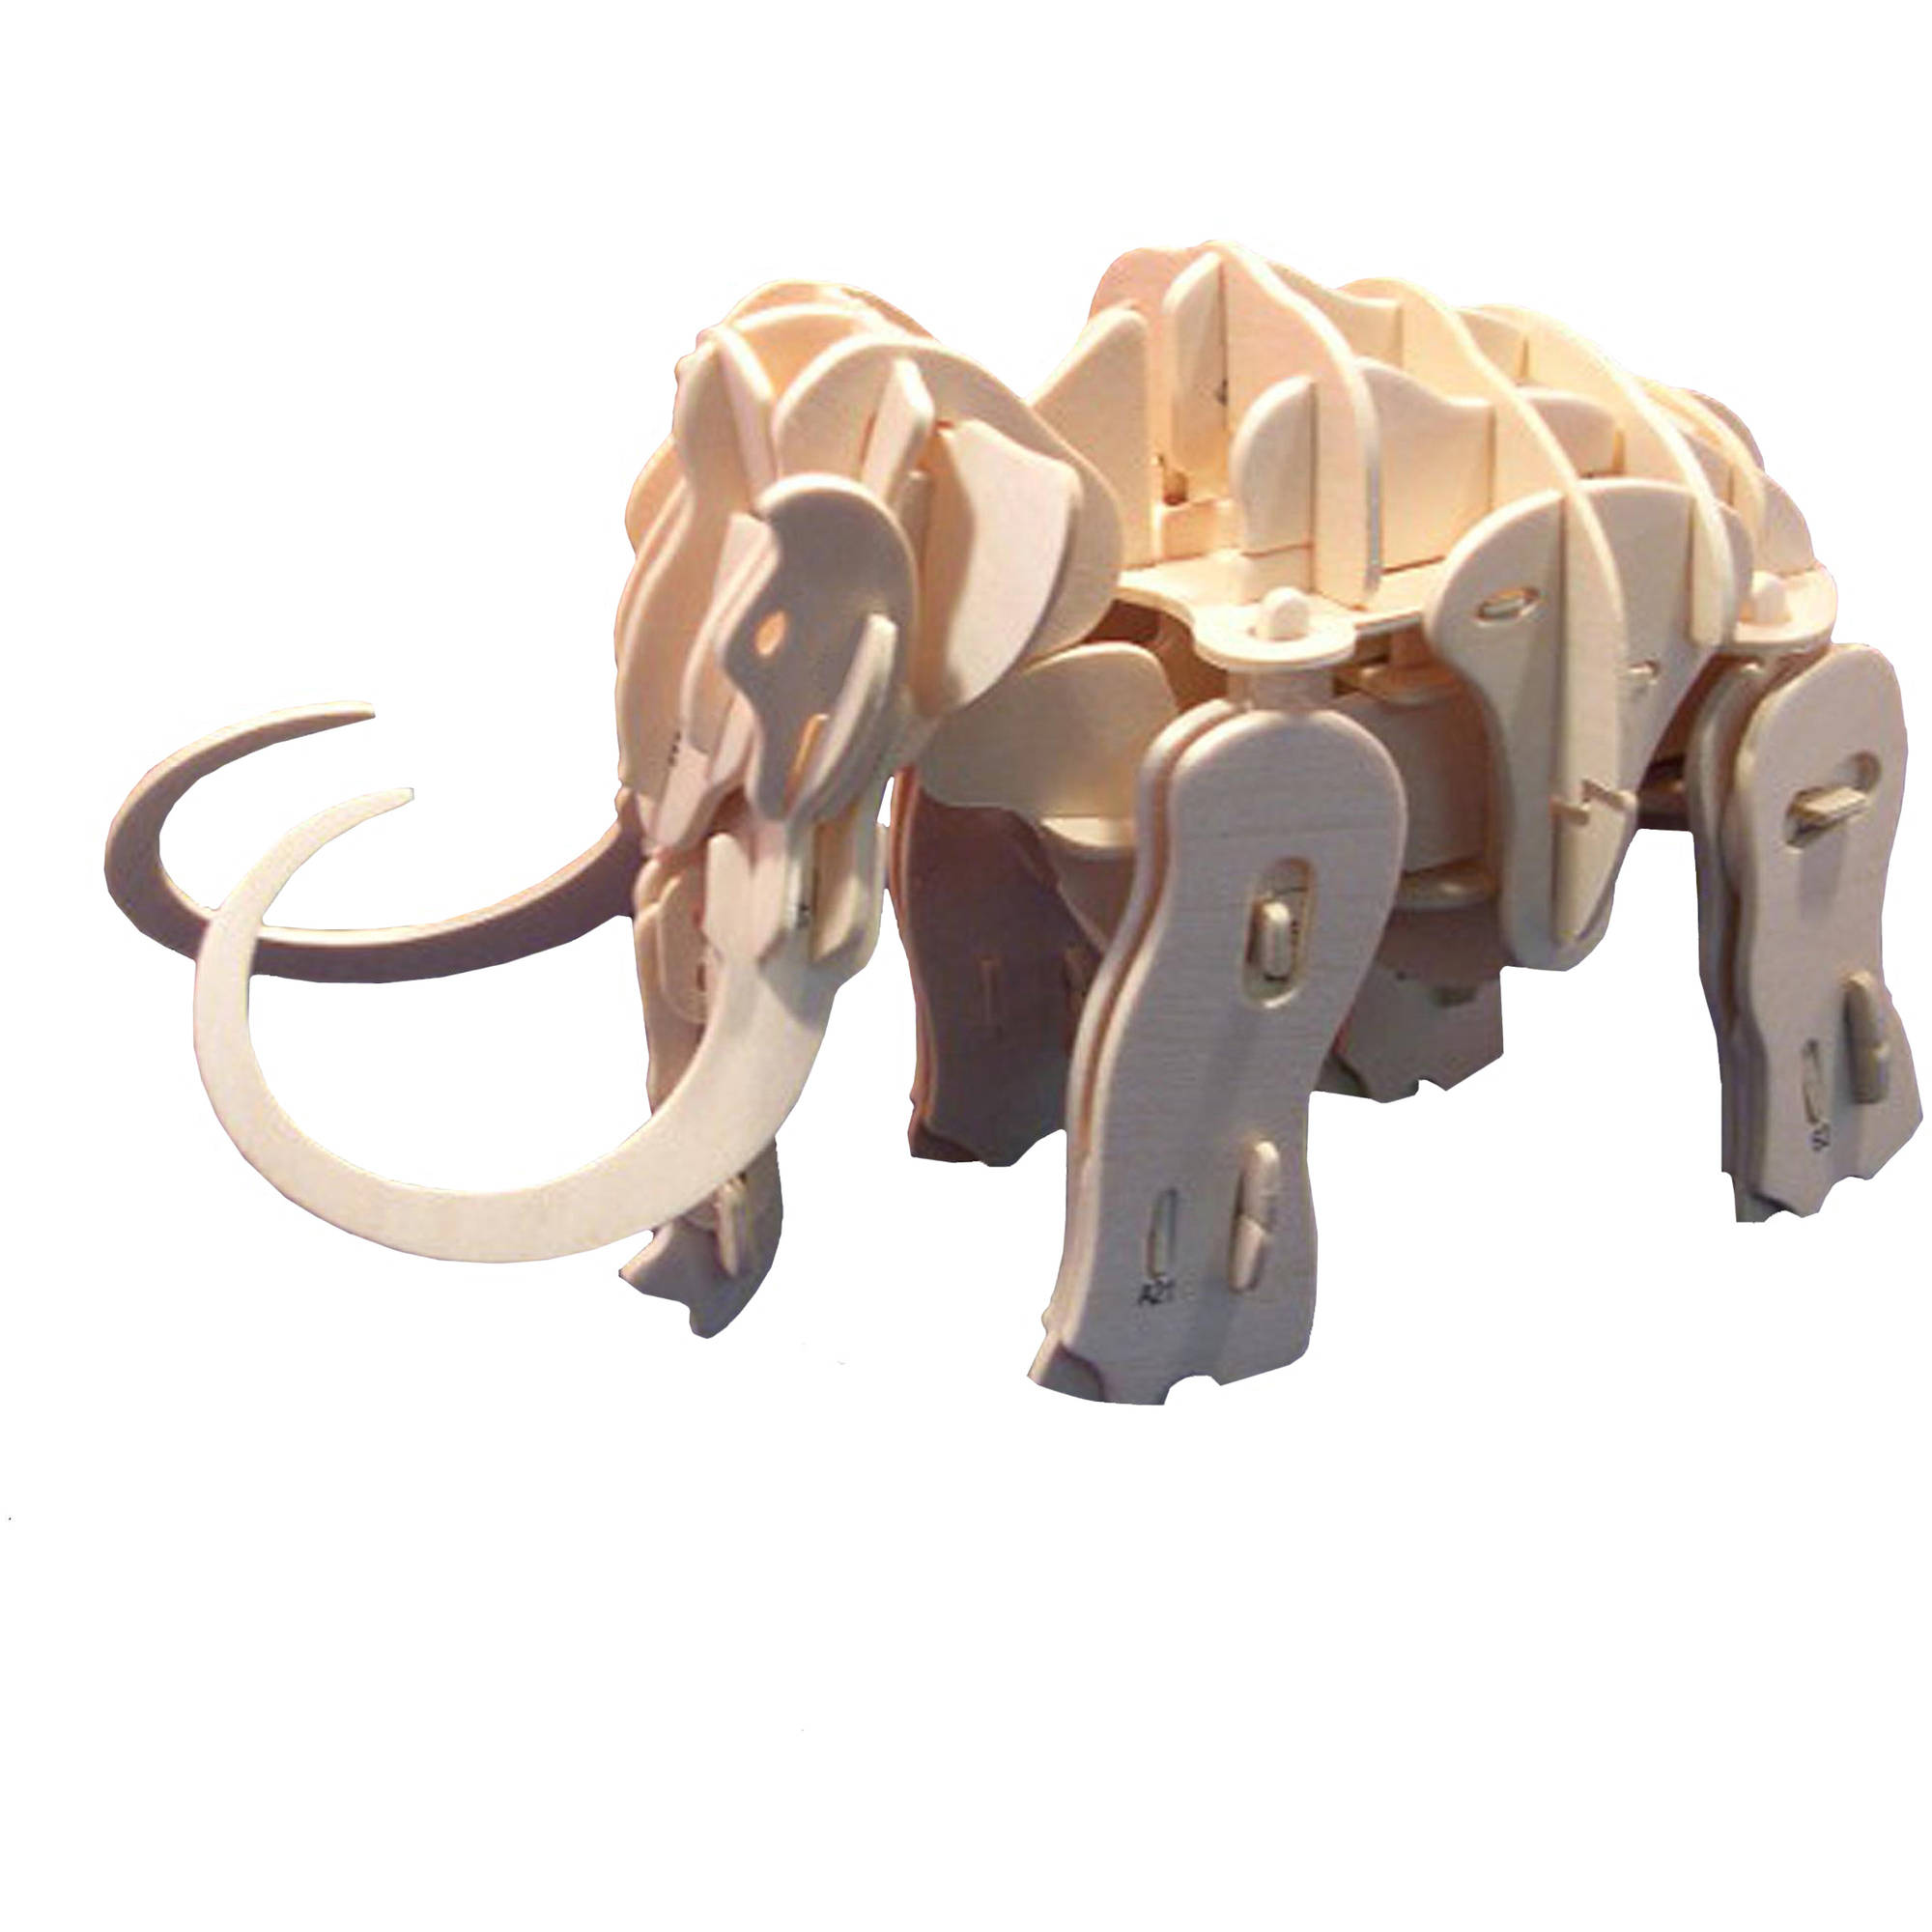 Robotime 3D Robotic Wooden Puzzle with Clap Control, Woolly Mammoth